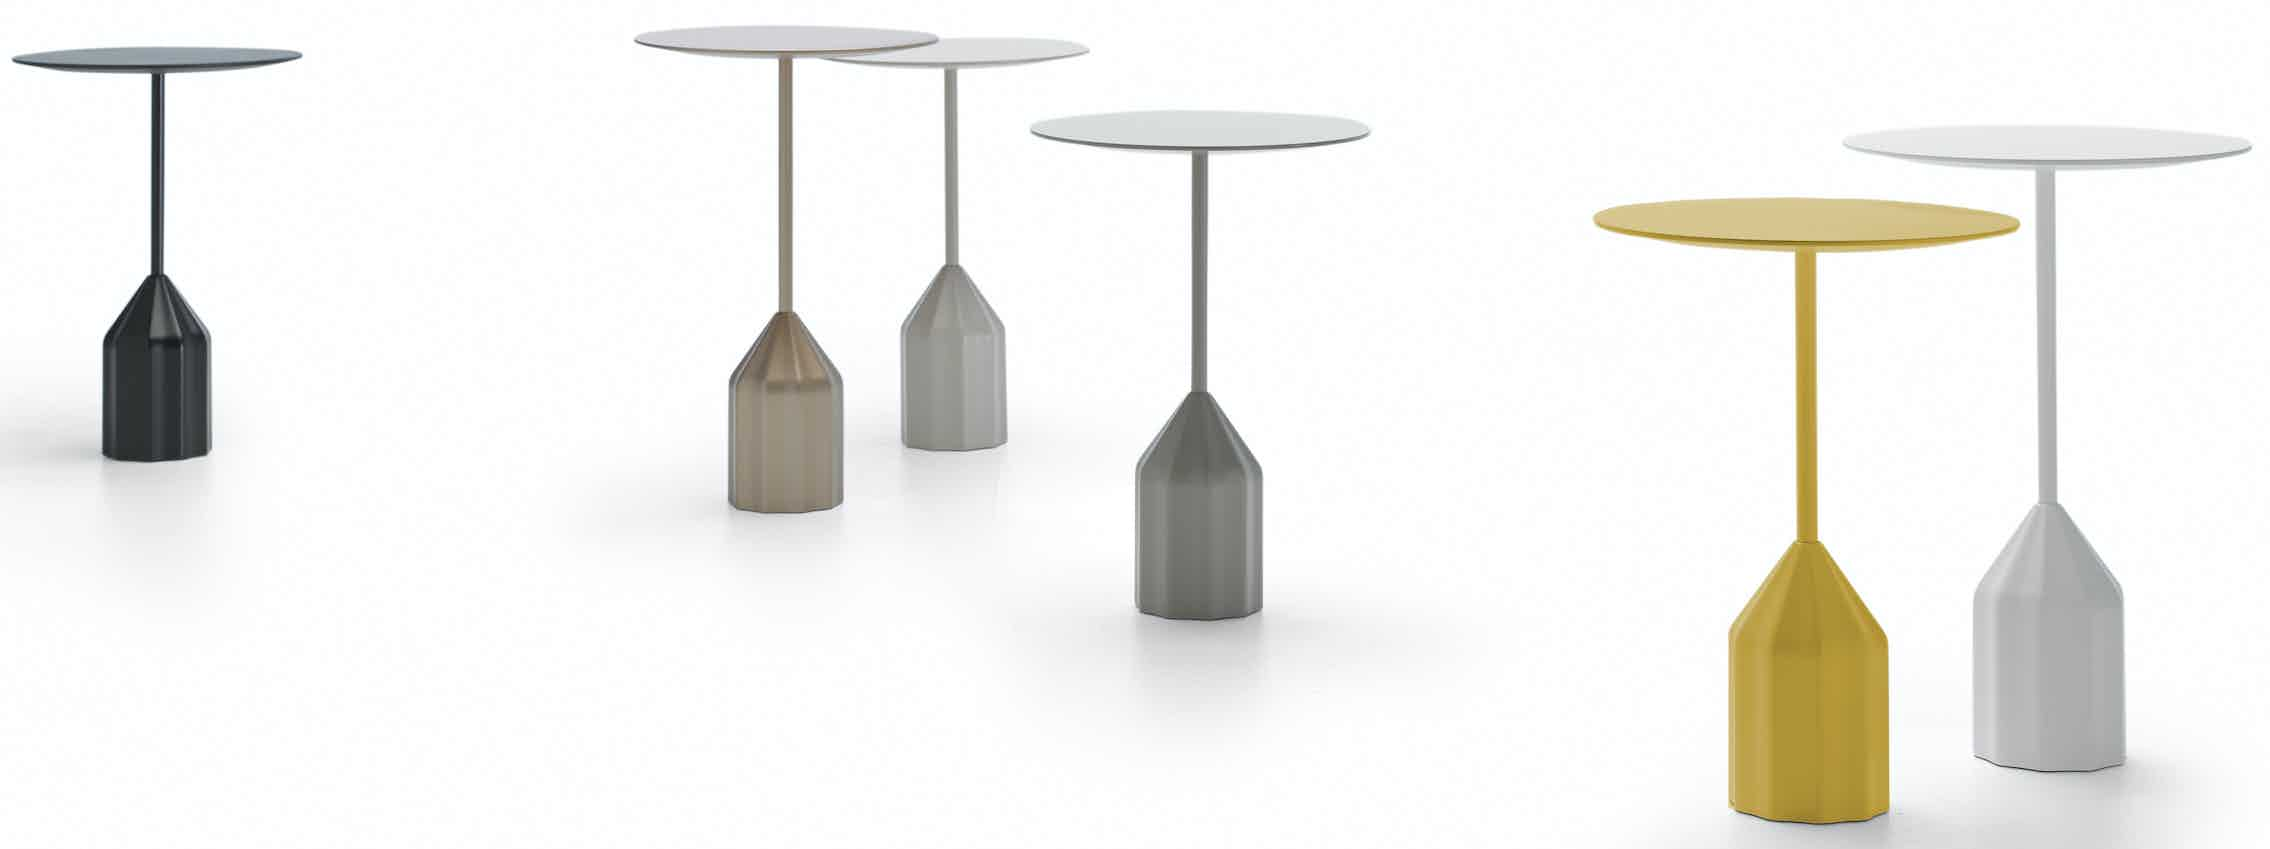 Viccarbe-colors-burin-table-haute-living